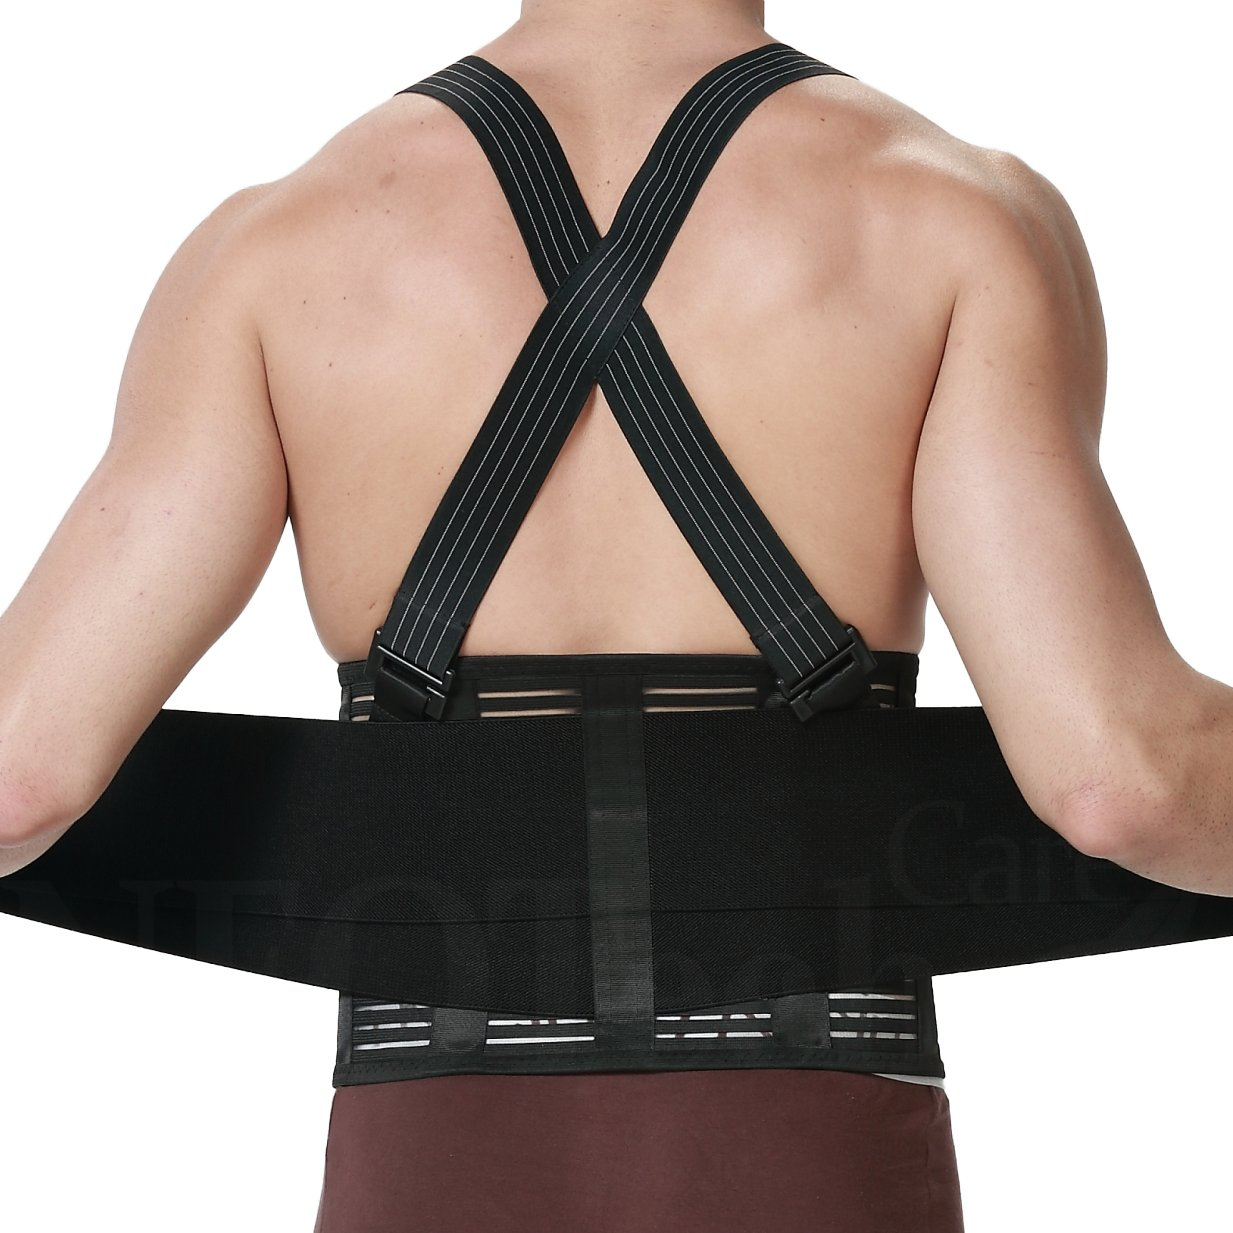 Back Brace with Suspenders for Men - Adjustable - Removable Shoulder Straps - Lumbar Support Belt - Lower Back Pain, Work, Lifting, Exercise, Gym - Neotech Care Brand - Black - Size S